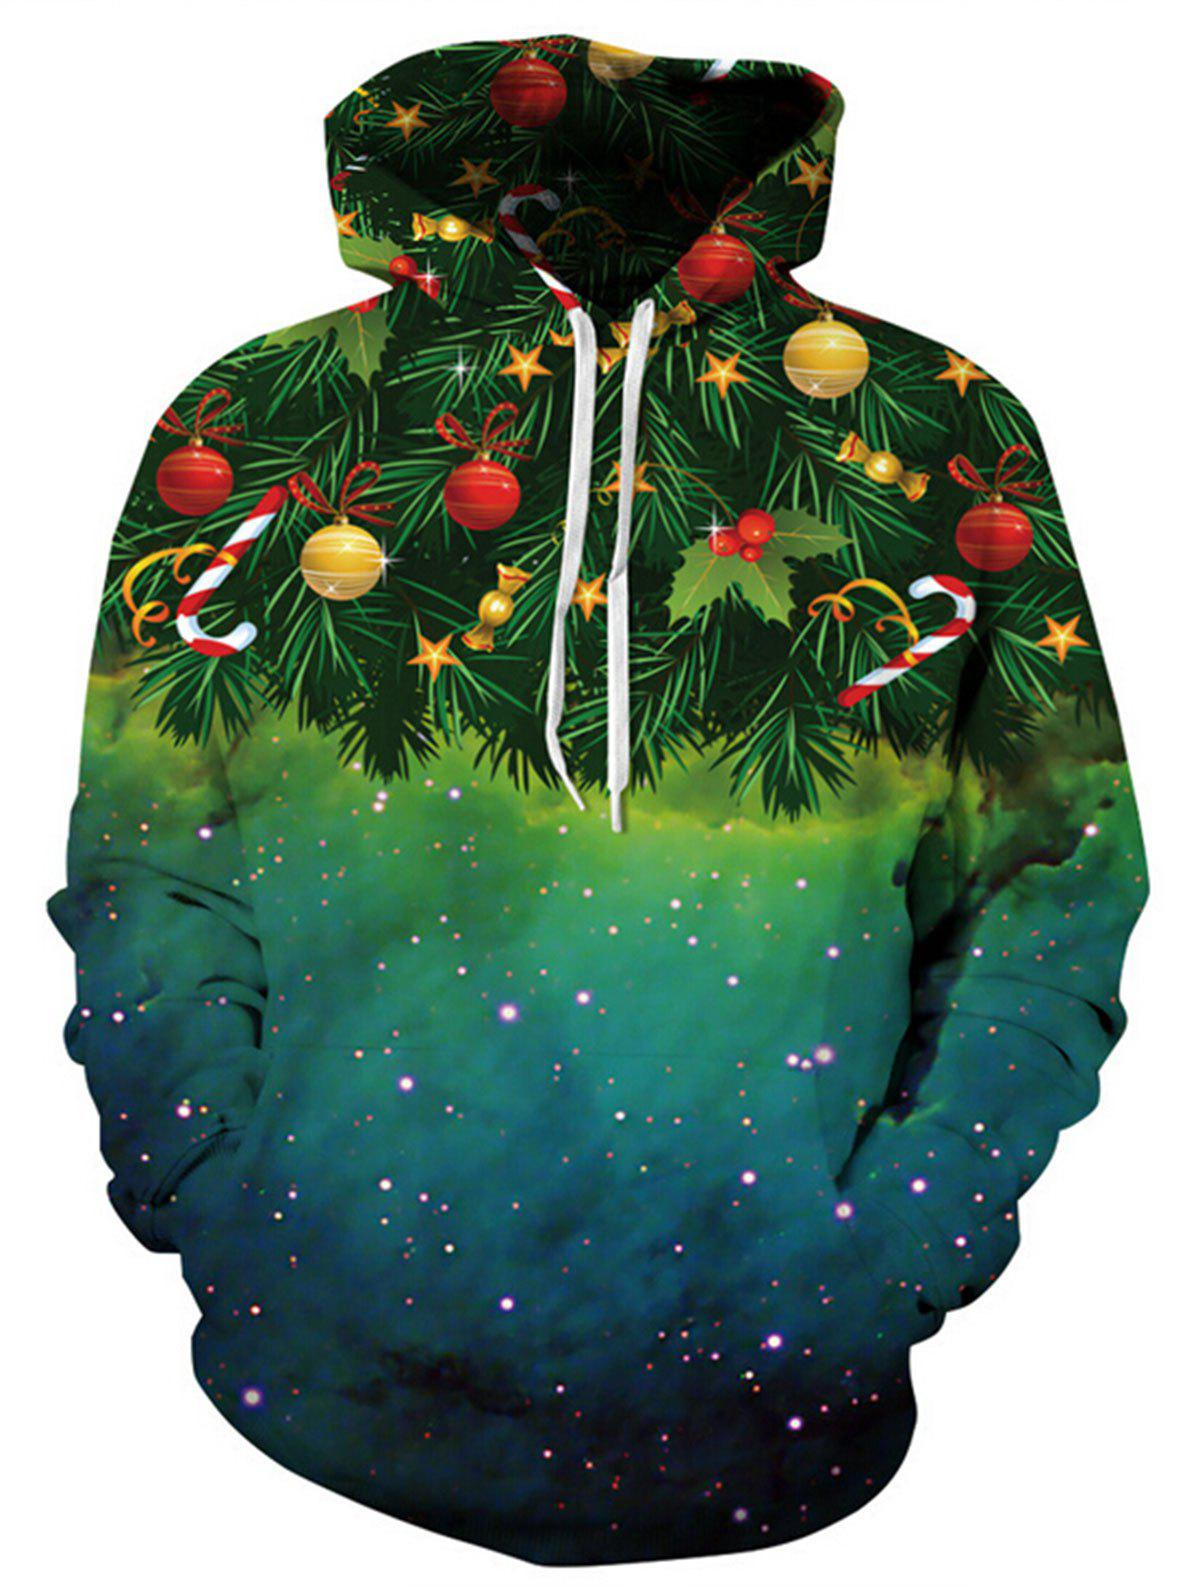 Christmas Tree Galaxy Print Plus Size HoodieWOMEN<br><br>Size: 2XL; Color: GREEN; Material: Polyester,Spandex; Shirt Length: Regular; Sleeve Length: Full; Style: Fashion; Pattern Style: Print; Elasticity: Elastic; Season: Fall,Spring,Winter; Weight: 0.4800kg; Package Contents: 1 x Hoodie;